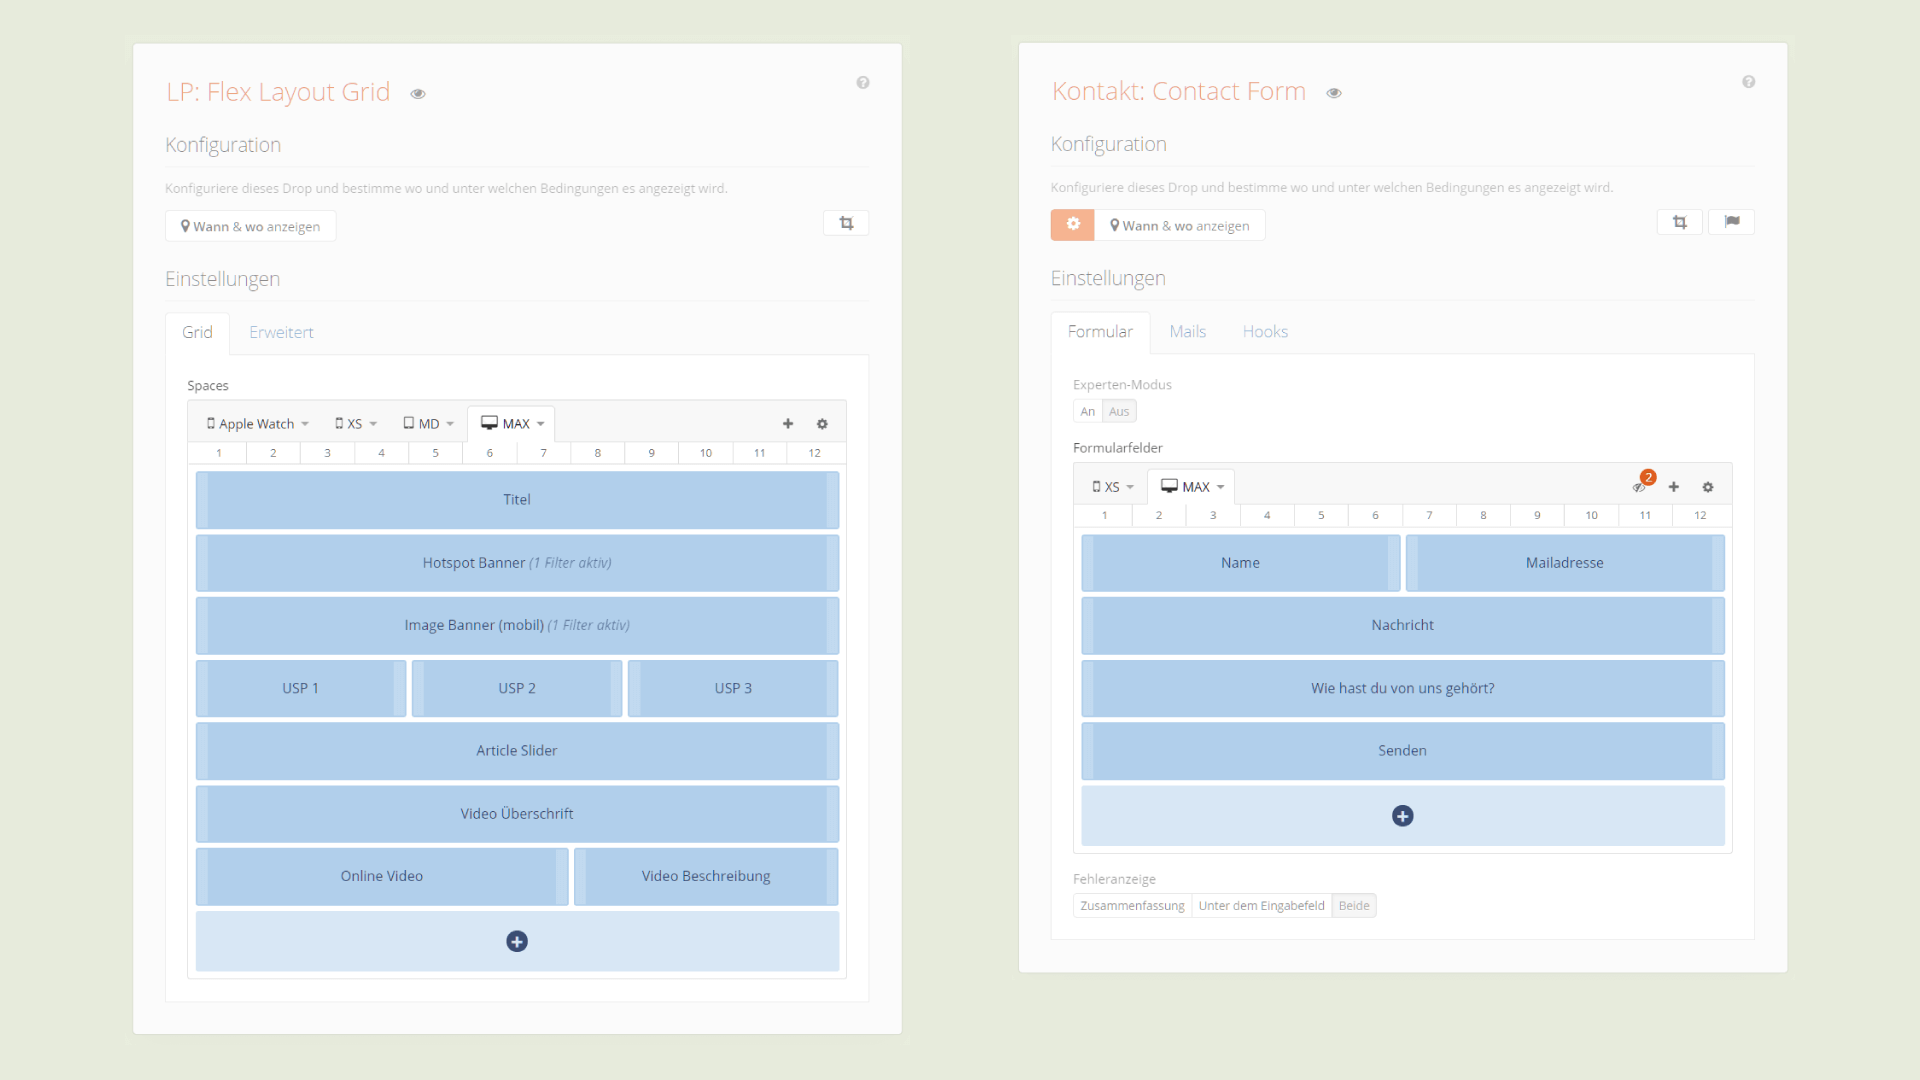 Grid Control im Flex Layout (links) und Contact Form (rechts)